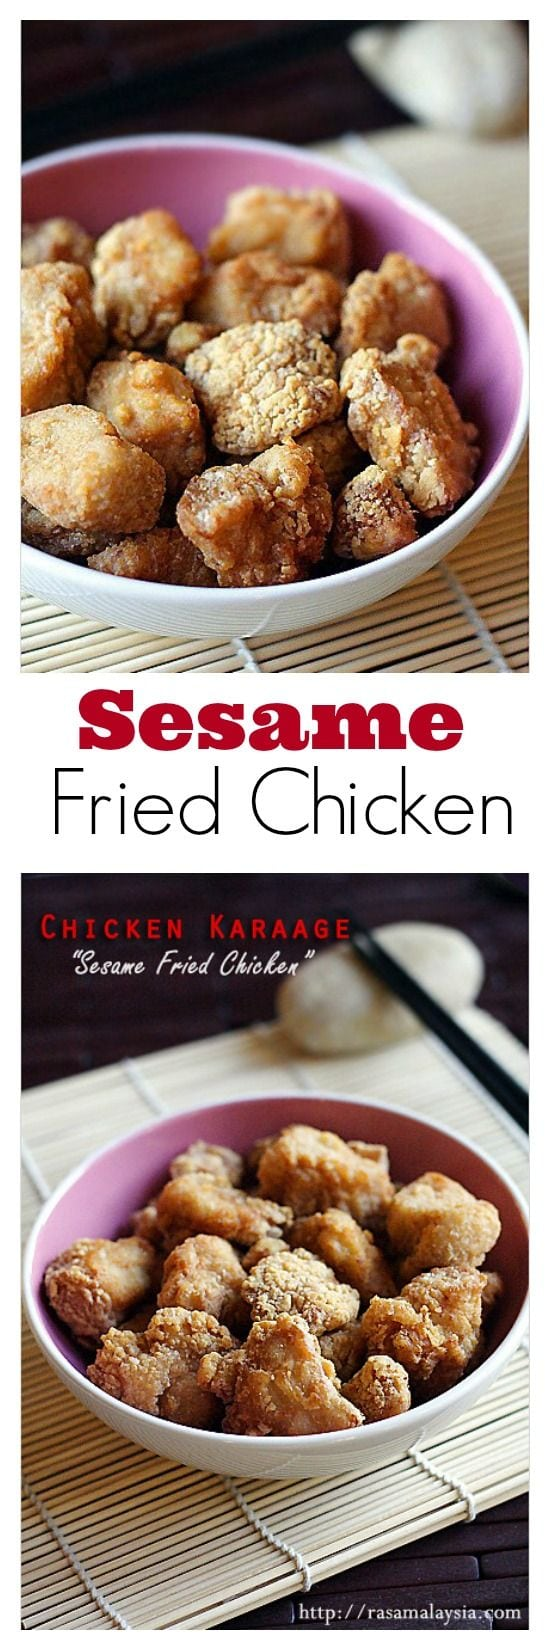 Sesame Fried Chicken or Chicken Karaage - Japanese restaurant favorite fried chicken is so yummy and addictive | rasamalaysia.com